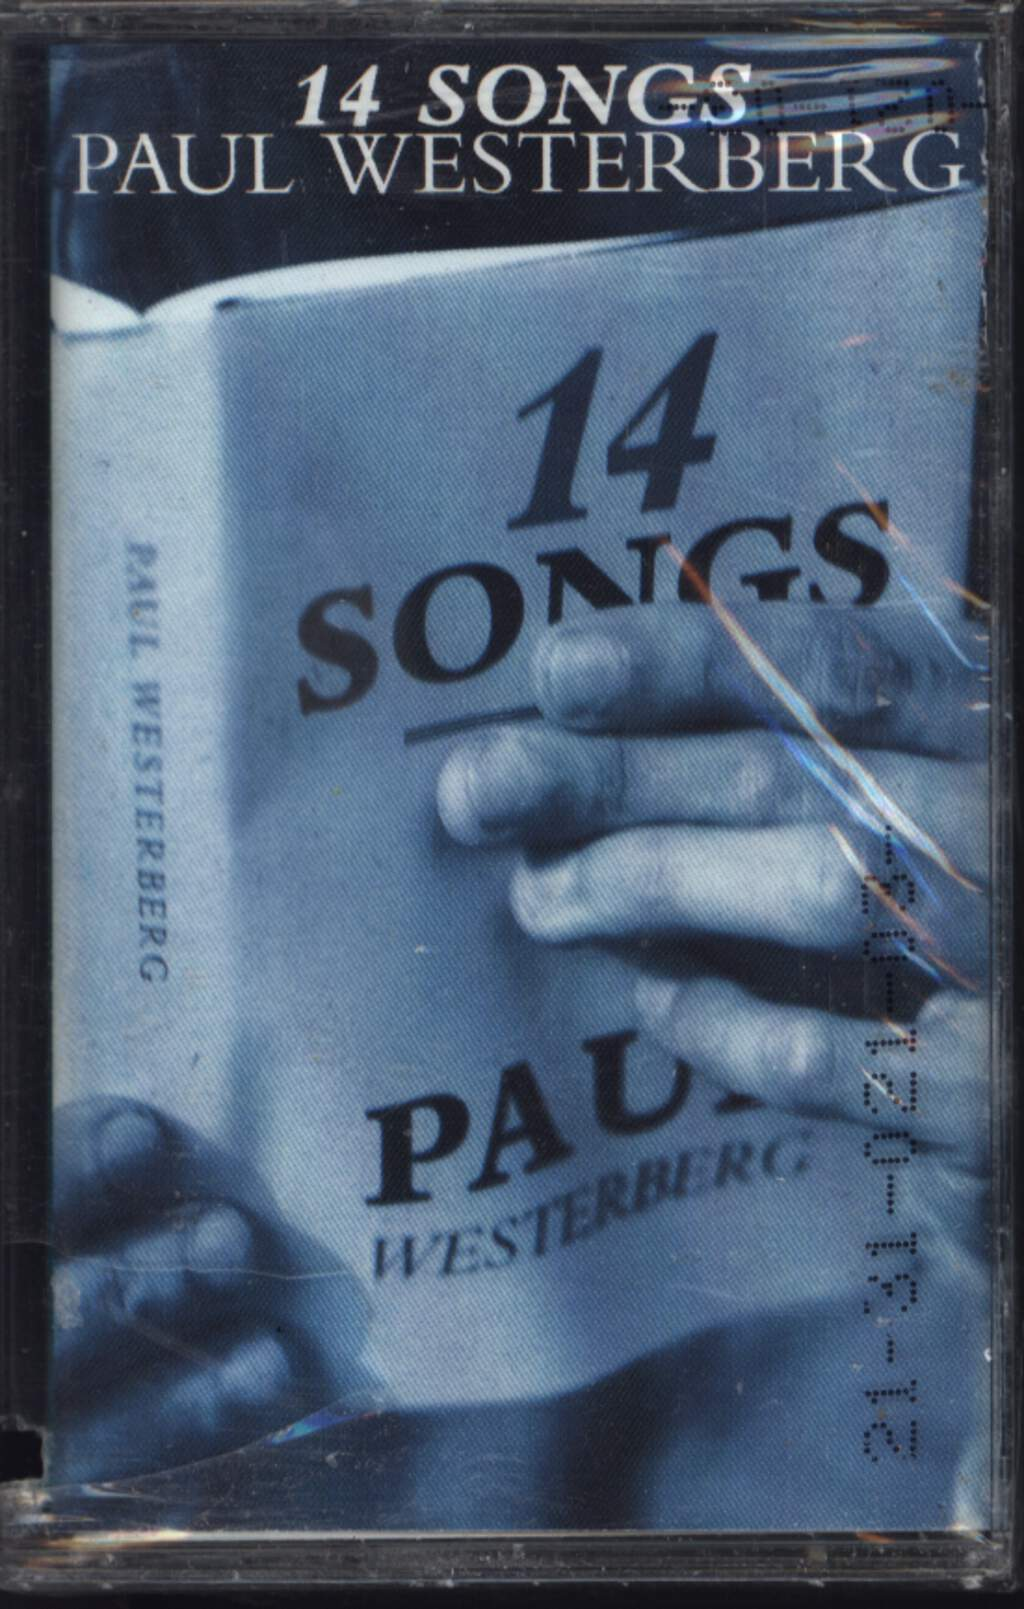 Paul Westerberg: 14 Songs, Tape